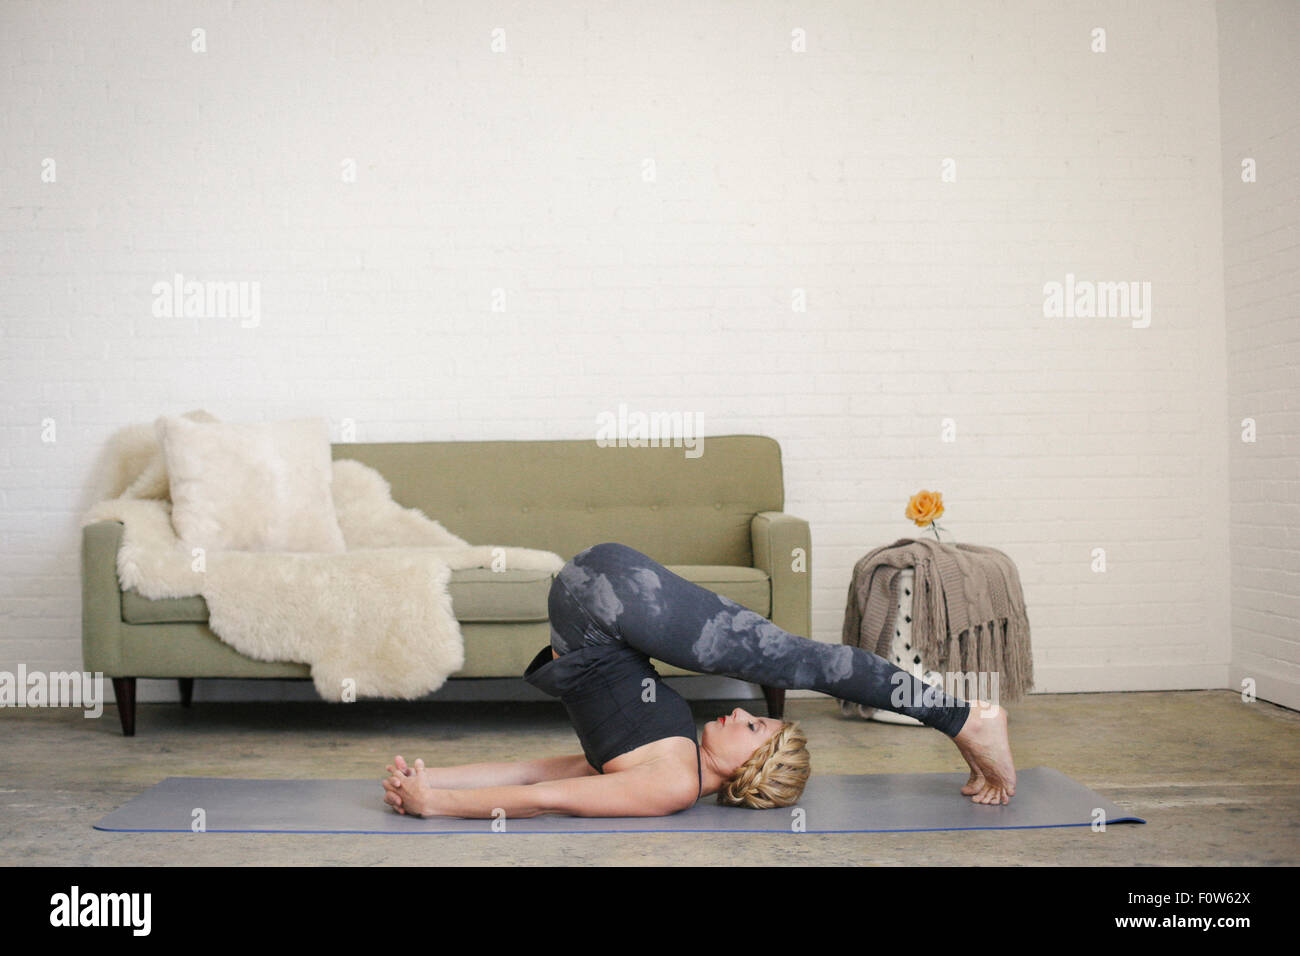 A blonde woman in a black leotard and leggings, lying on a yoga mat in a room, doing yoga, her legs bent down over - Stock Image